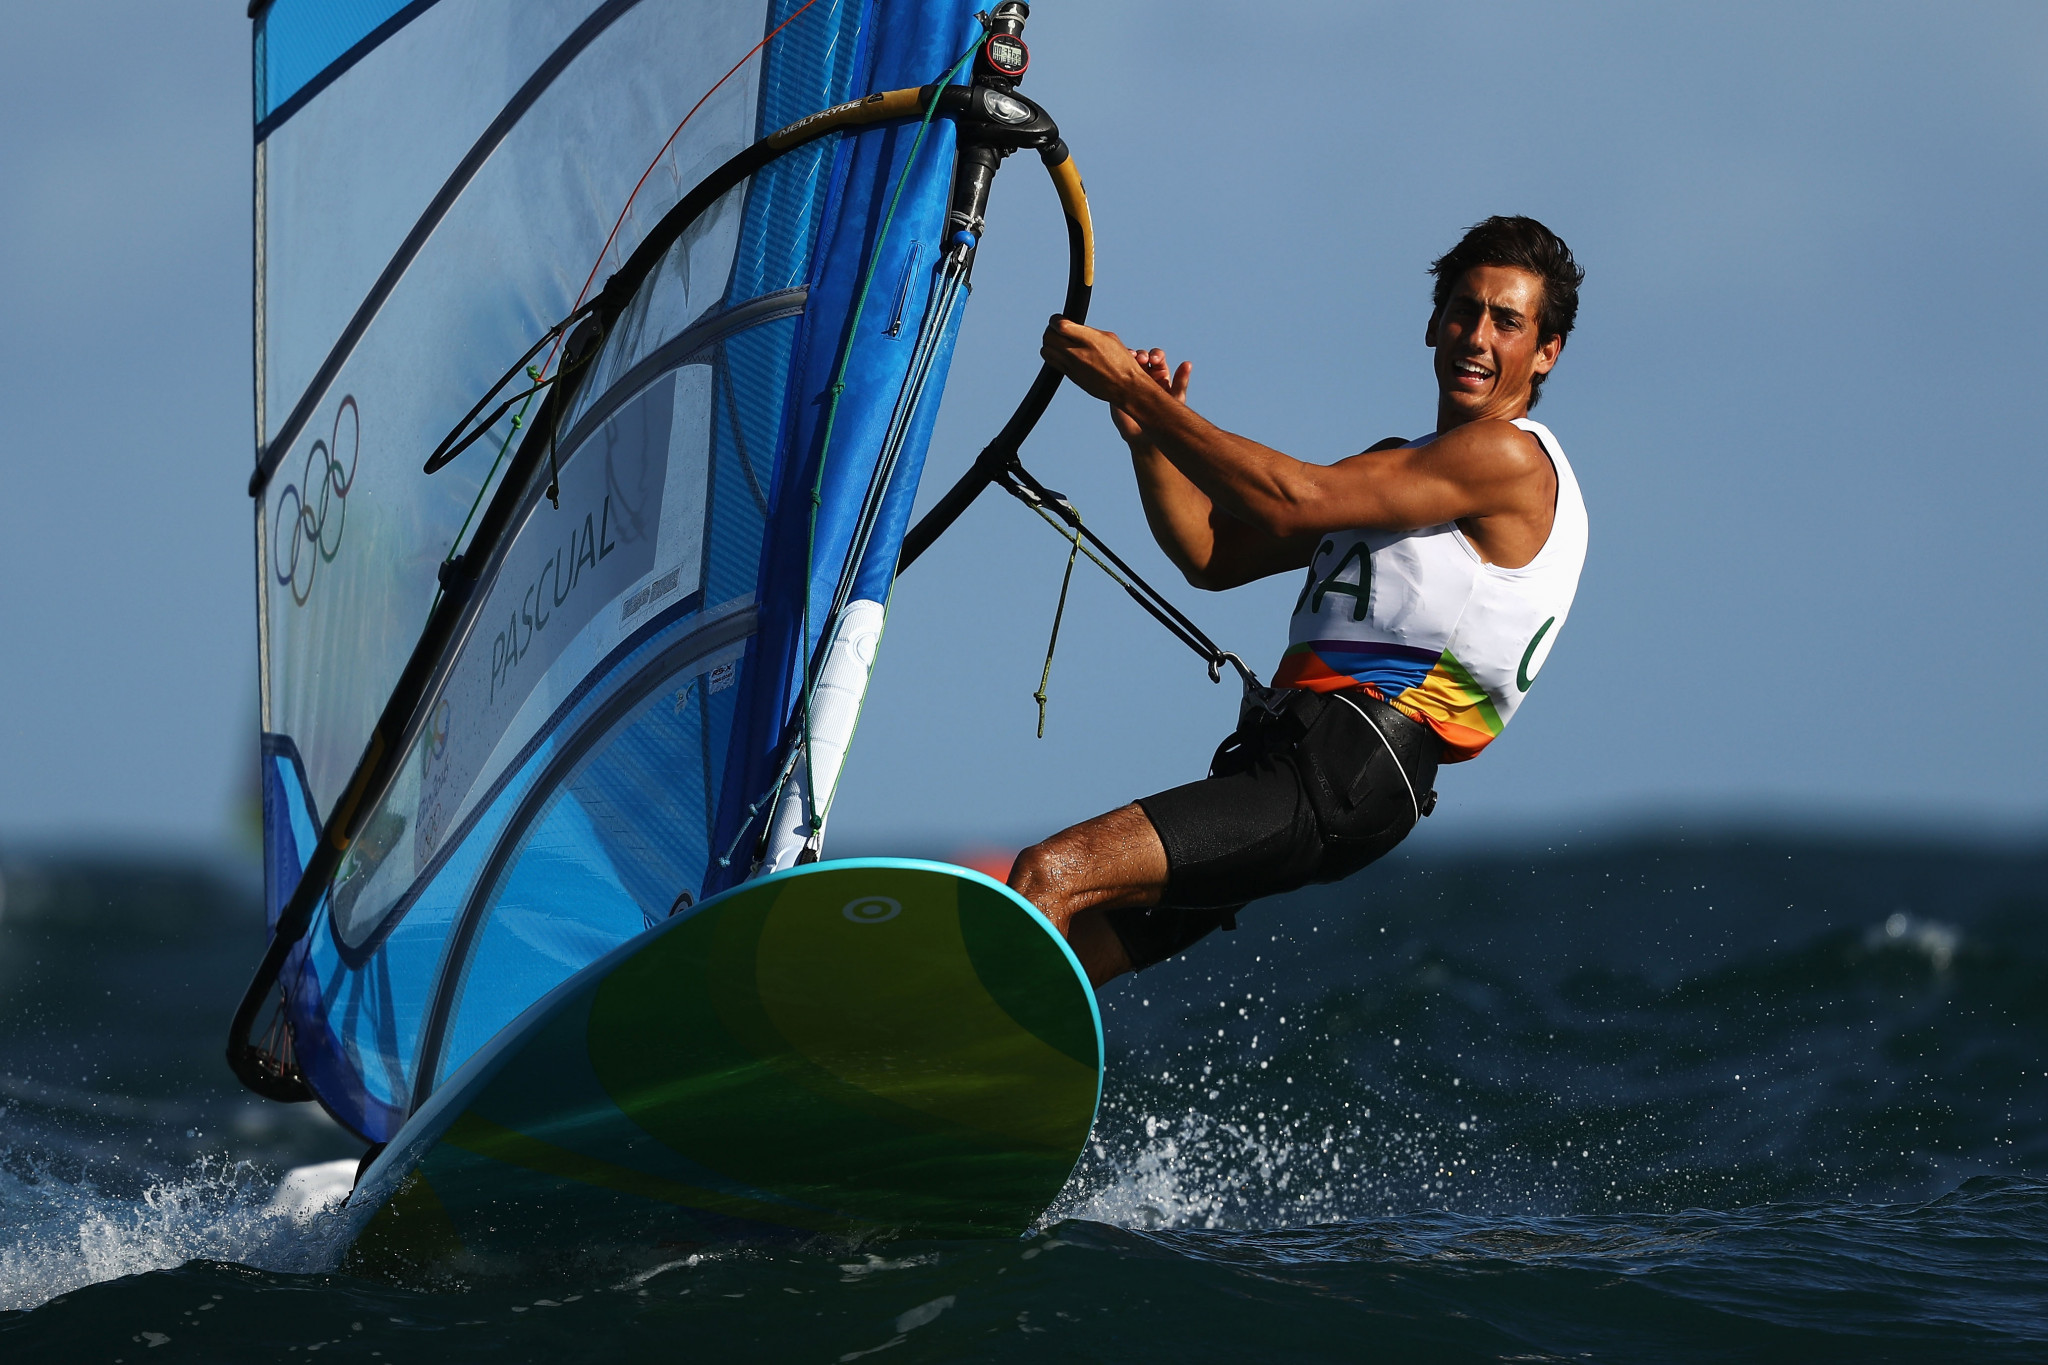 Home sailor Pascual makes most of limited racing day at Sailing World Cup in Miami